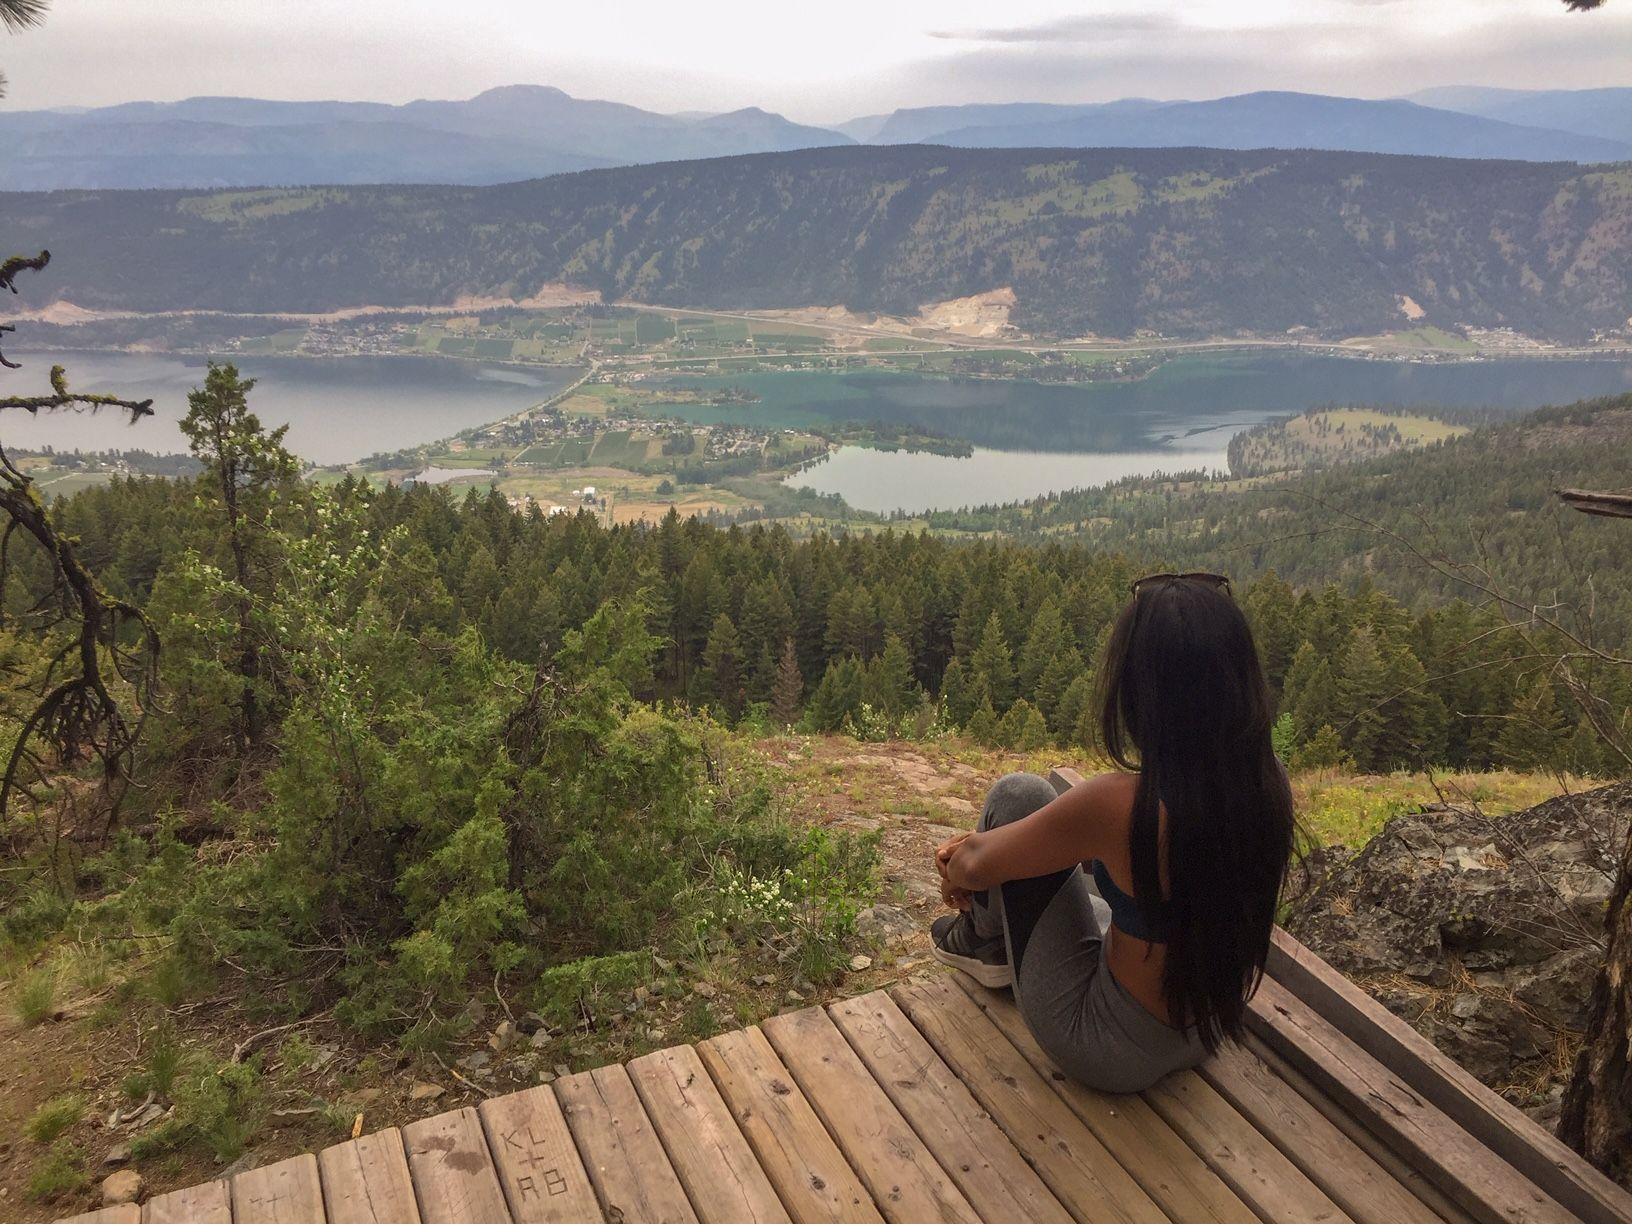 oyama-lookout-okanagan-british-columbia.jpeg